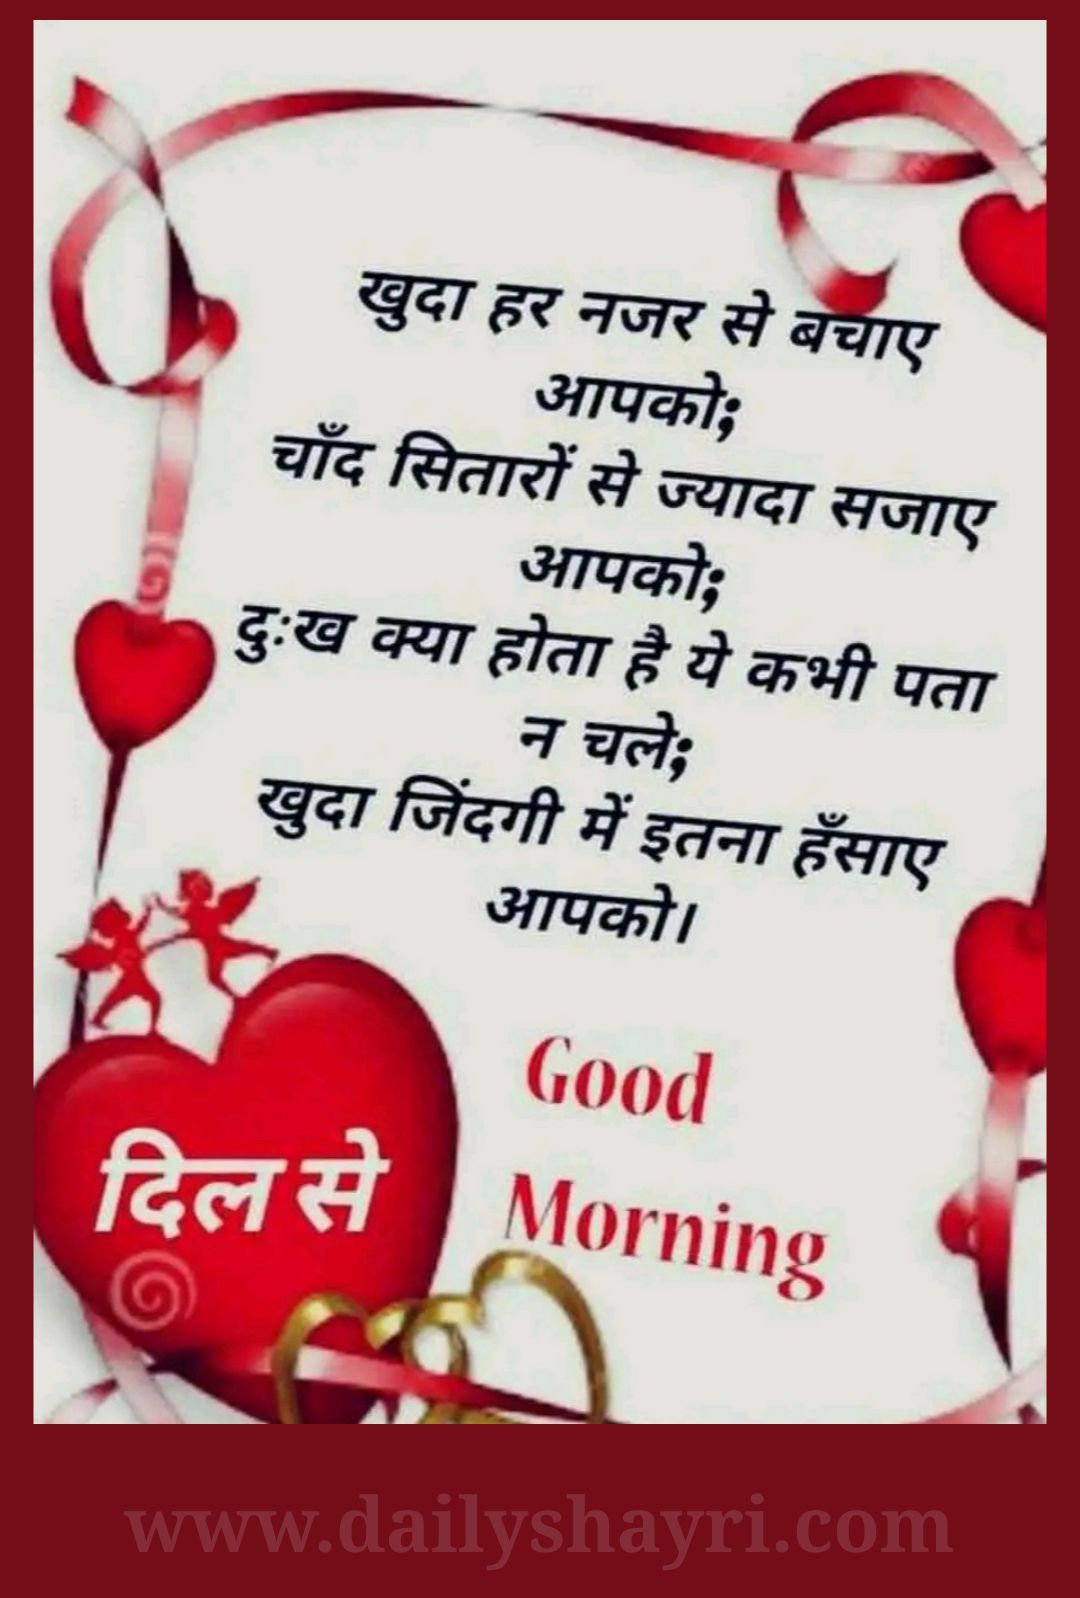 2020 Best Good Morning Shayari Images Hindi Shayari Love Shayari Love Quotes H Good Morning Wishes Friends Good Morning Dear Friend Hindi Good Morning Quotes